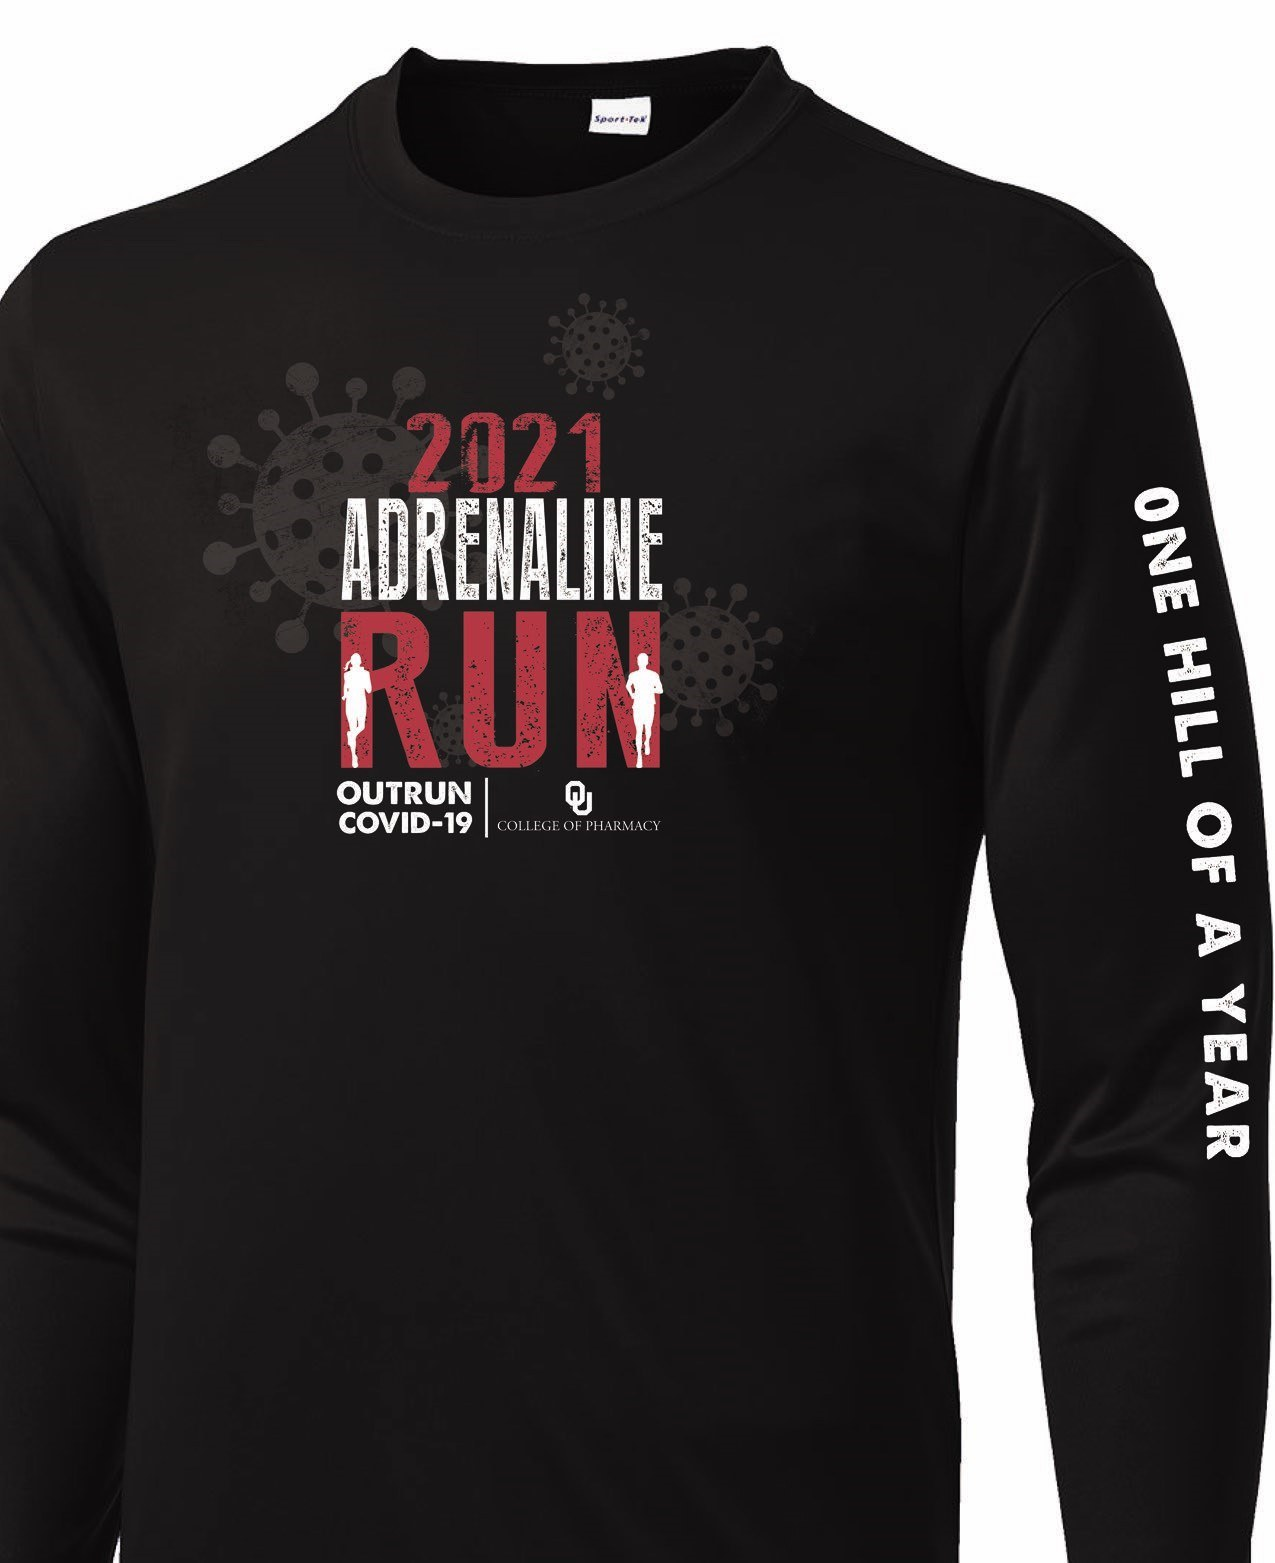 Adrenaline-Run-2021-Shirt.jpg#asset:4887